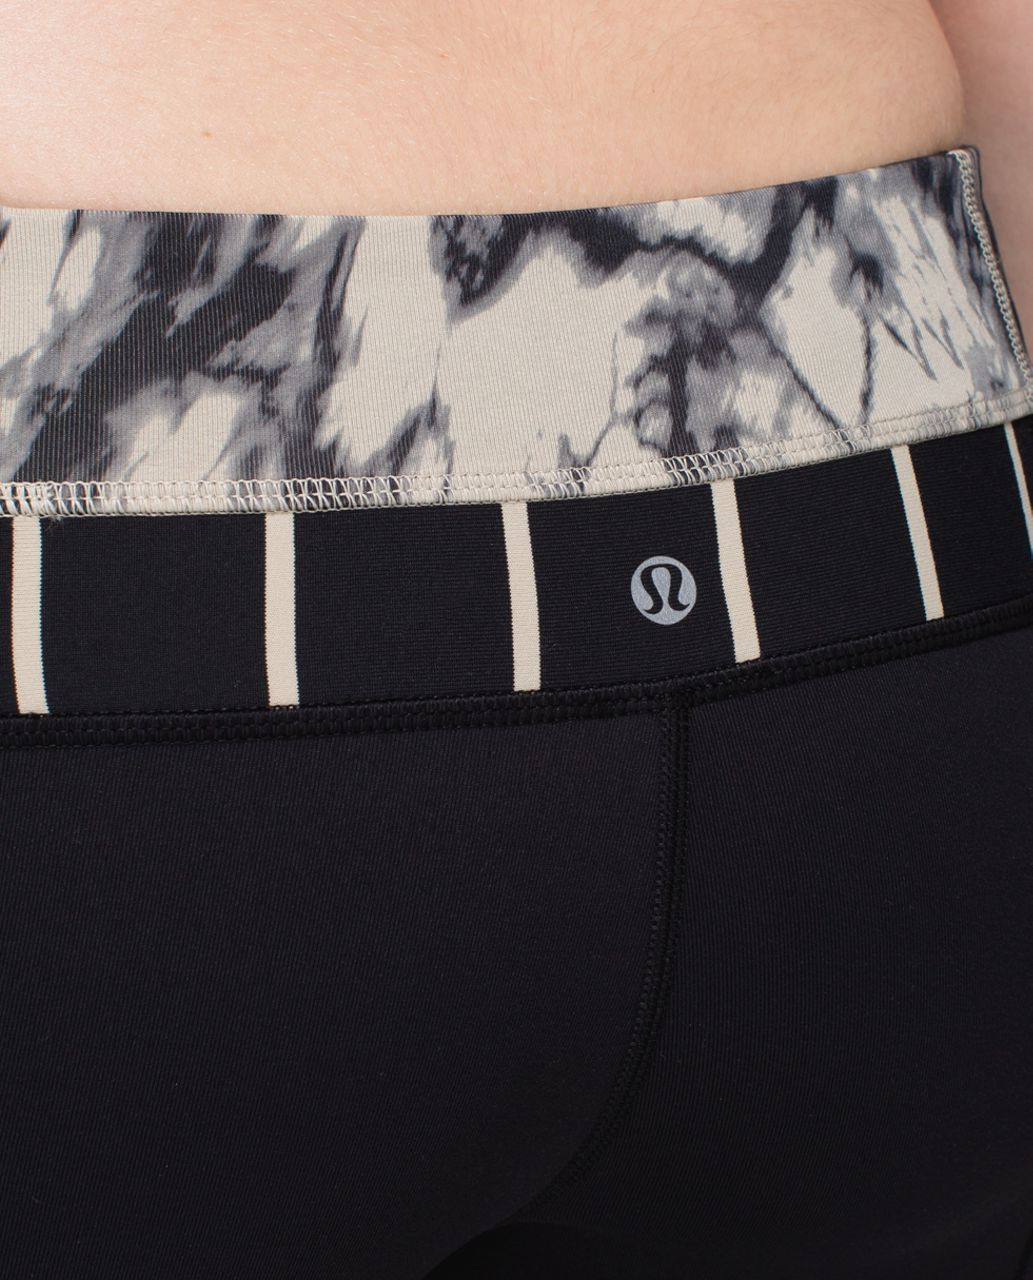 Lululemon Groove Pant *Full-On Luon (Regular) - Black / Great Granite Black Mojave Tan / Cayman Stripe Black Mojave Tan